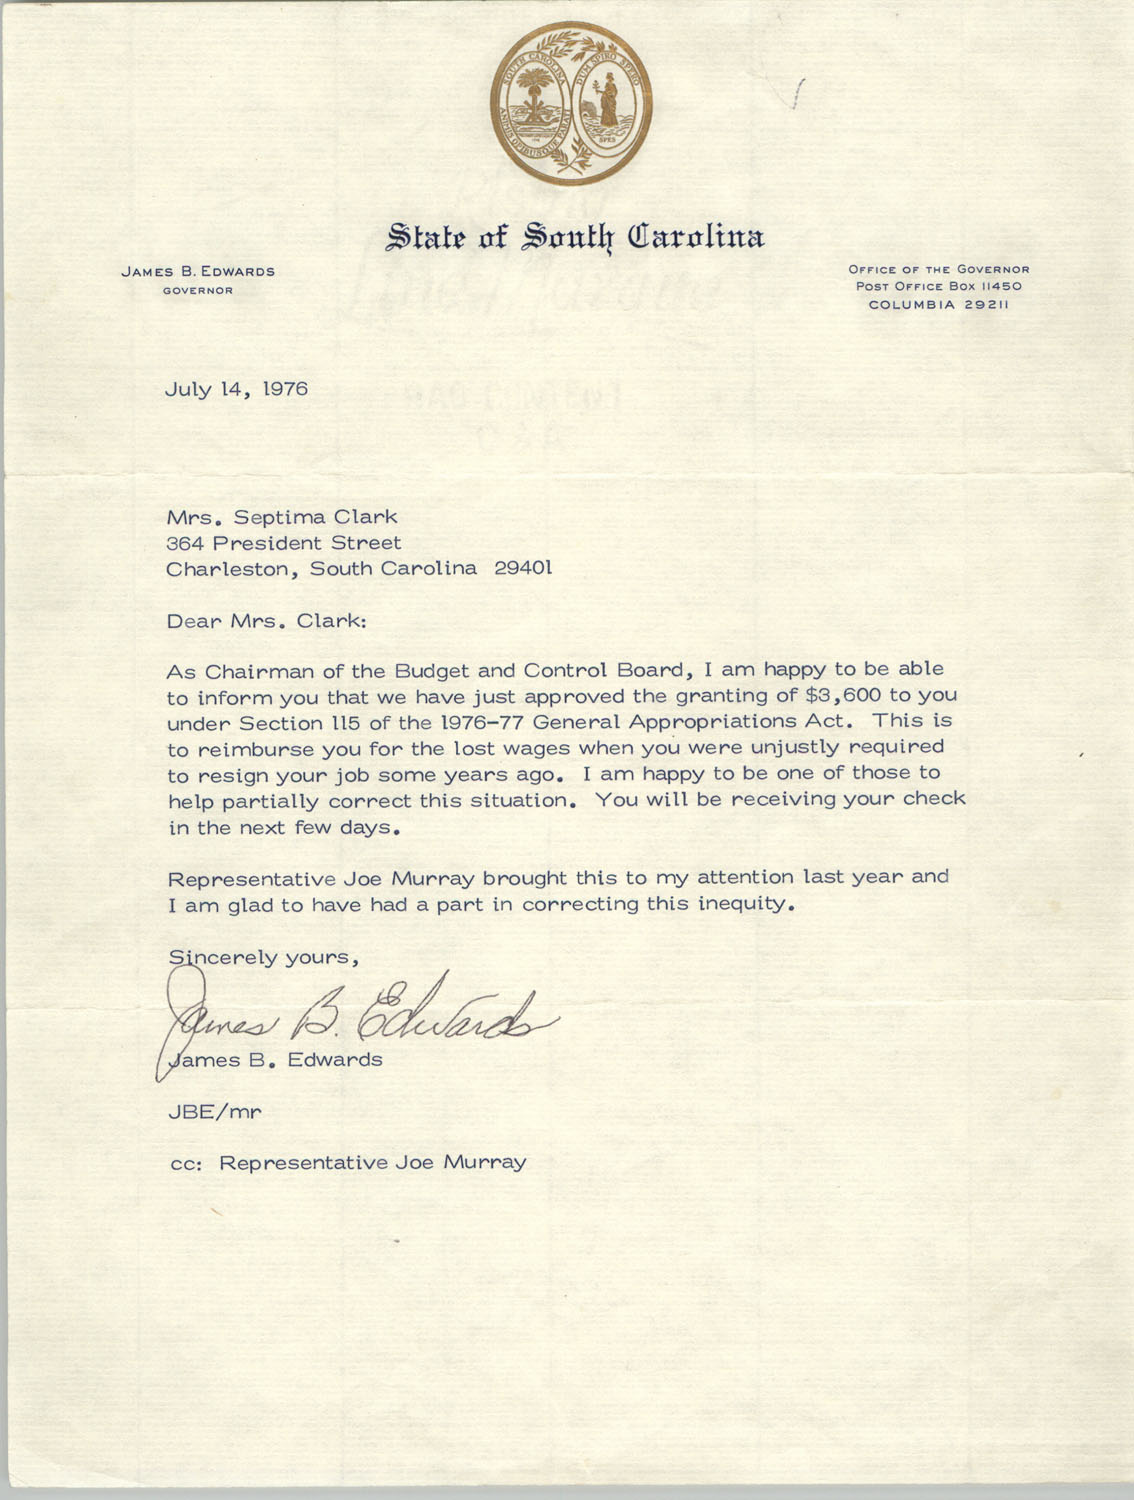 Letter from James B. Edwards to Septima P. Clark, July 14, 1976